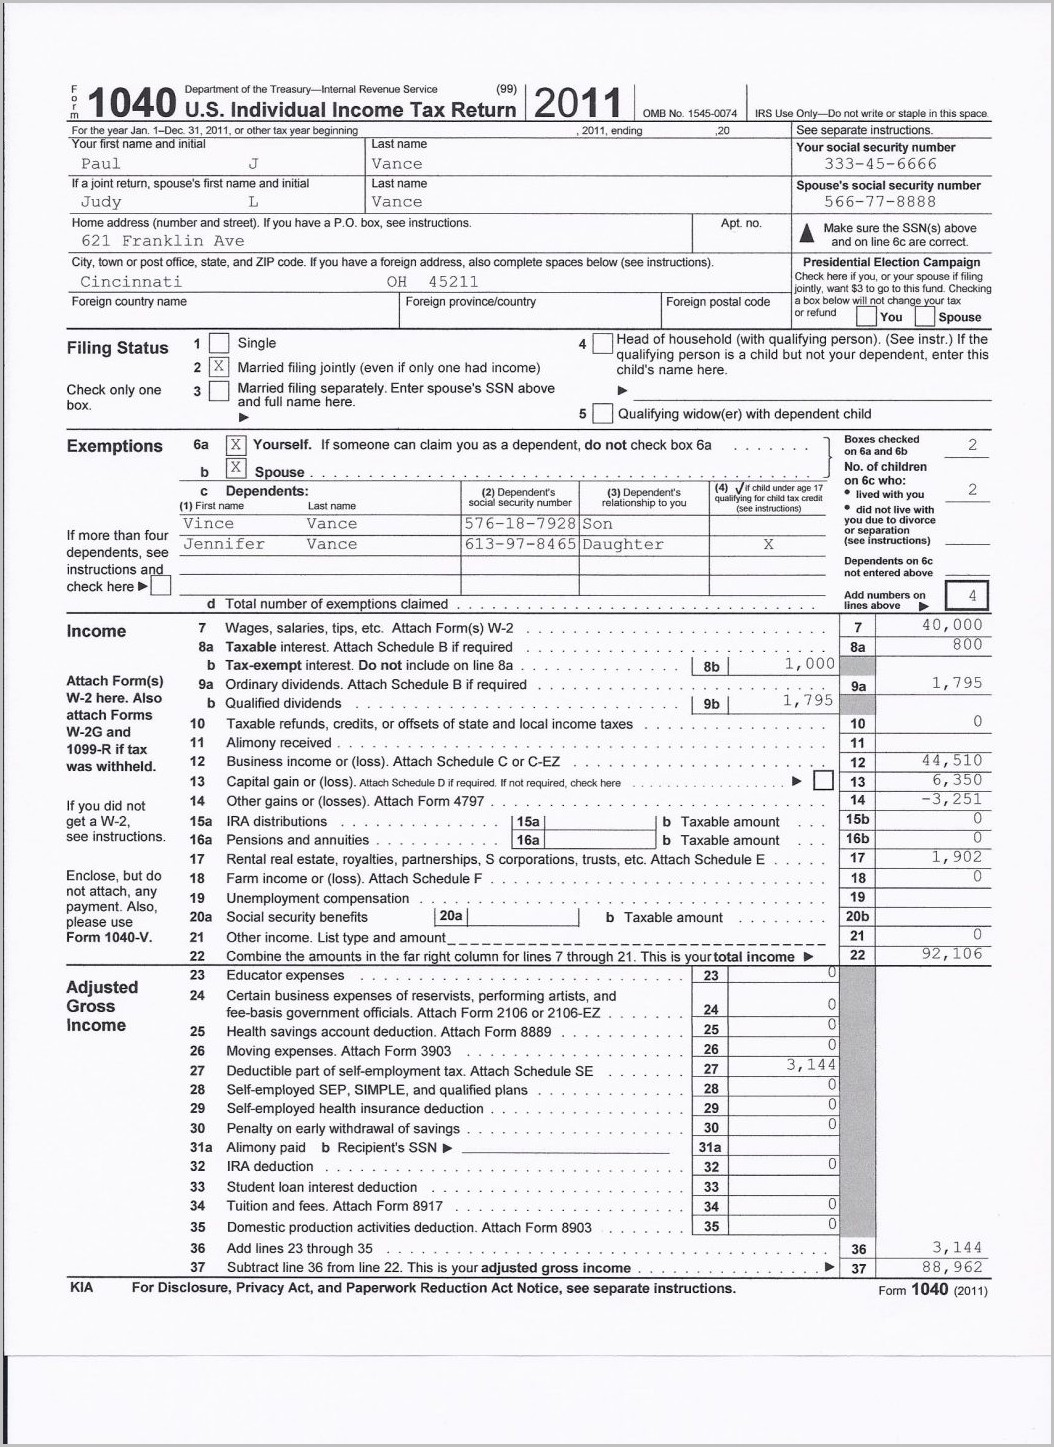 Irs Form 1040 Instructions 2010